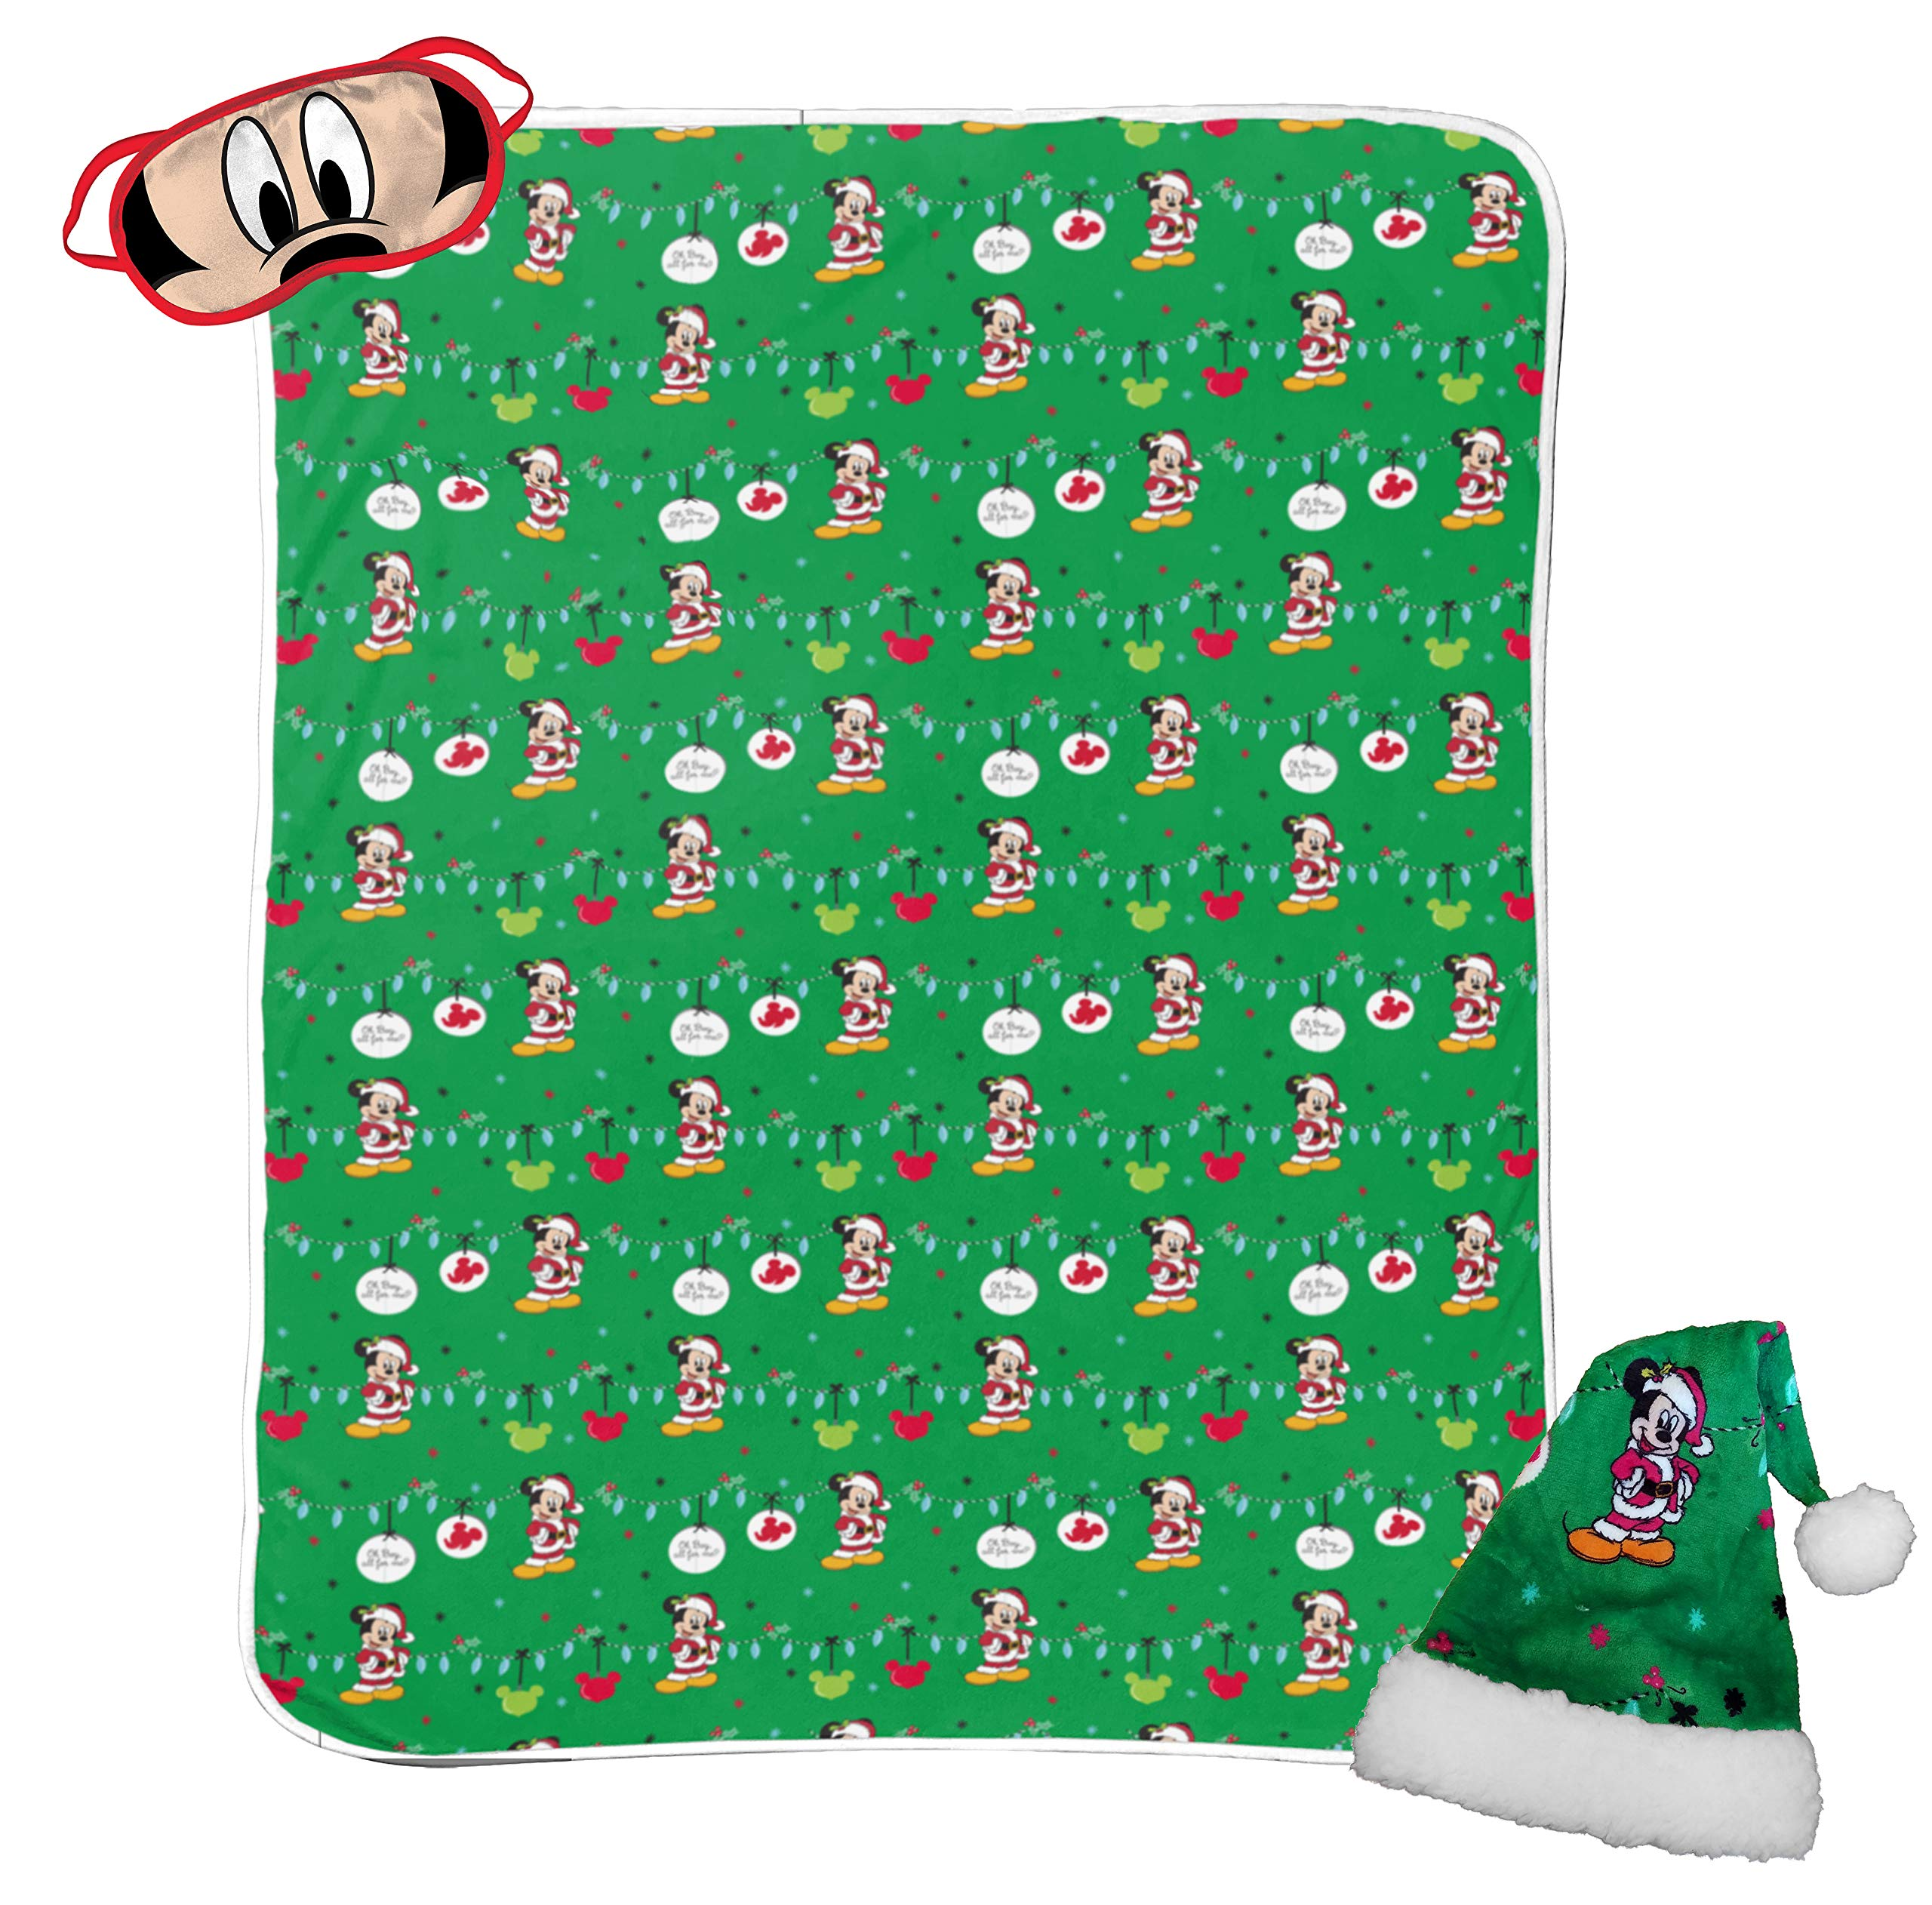 Jay Franco Disney Mickey Mouse 3 Piece Holiday Set - Kids Christmas Bedding, Super Soft Sherpa Throw Blanket & Eye Mask with Bonus Santa Hat (Official Disney Product) by Jay Franco